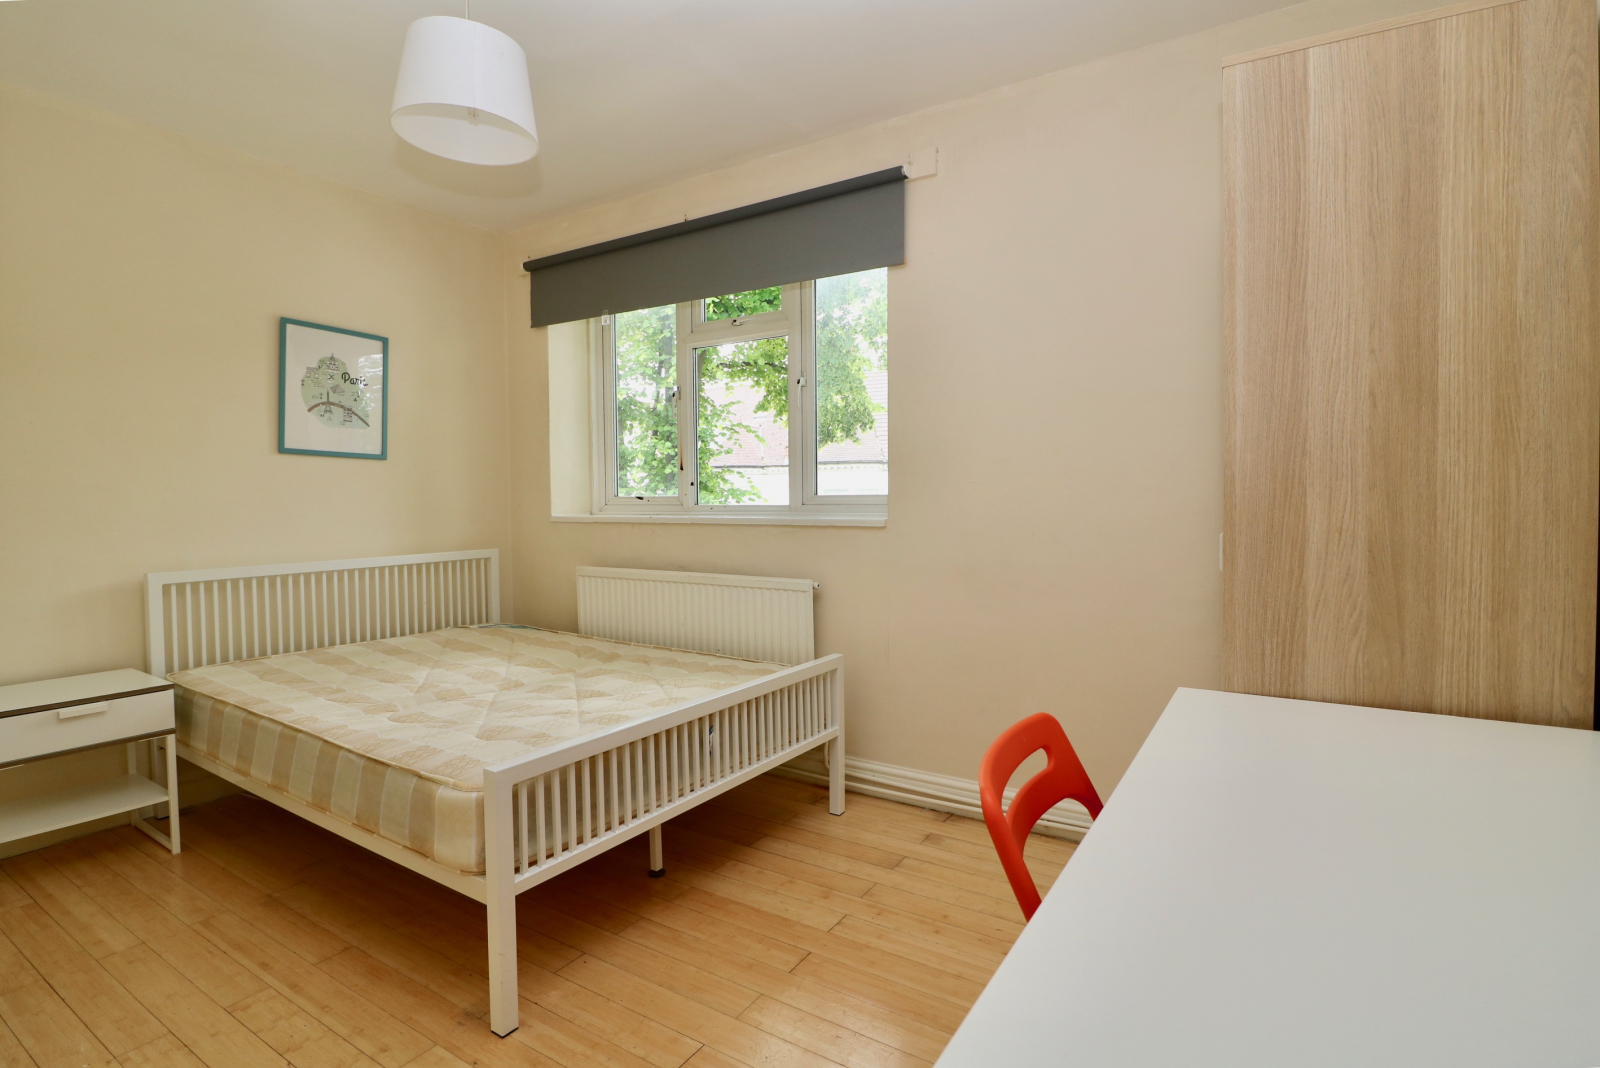 £2250- Newly refurbished 4 bedroom flat